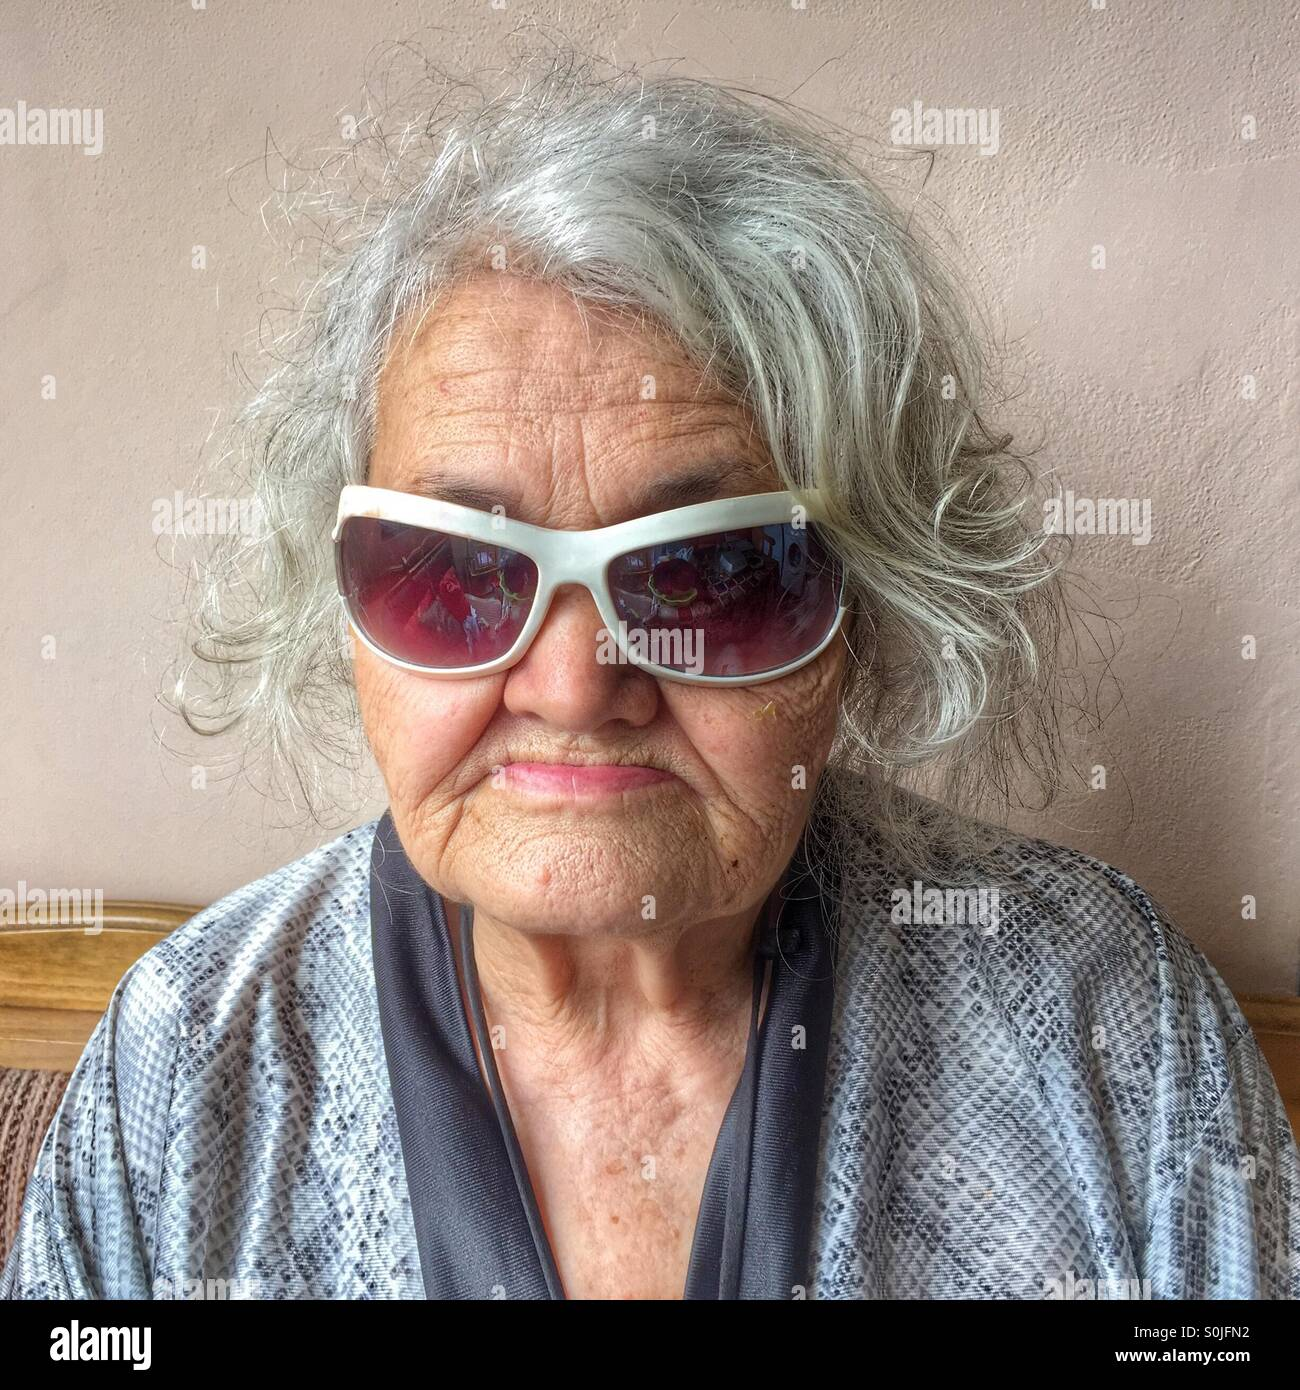 Elderly woman with sunglasses - Stock Image